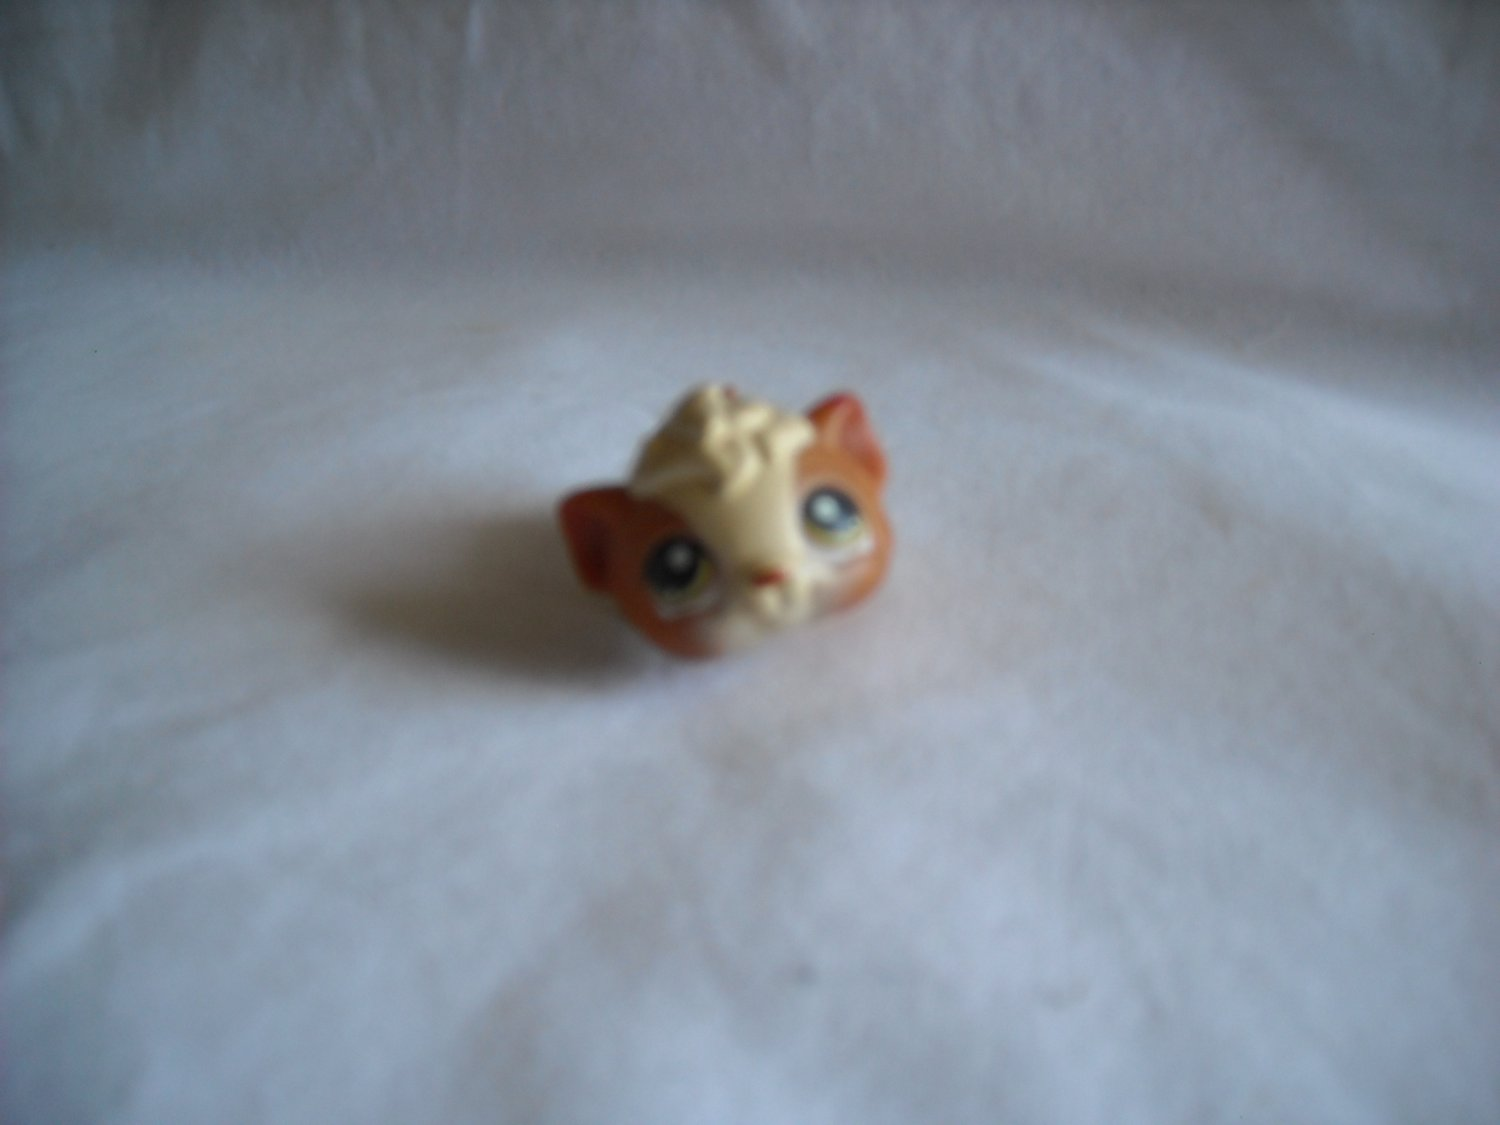 2005 Hasbro Littlest Pet Shop Retired Guinea Pig #213 Brown and Cream with Green Eyes (GTB1)